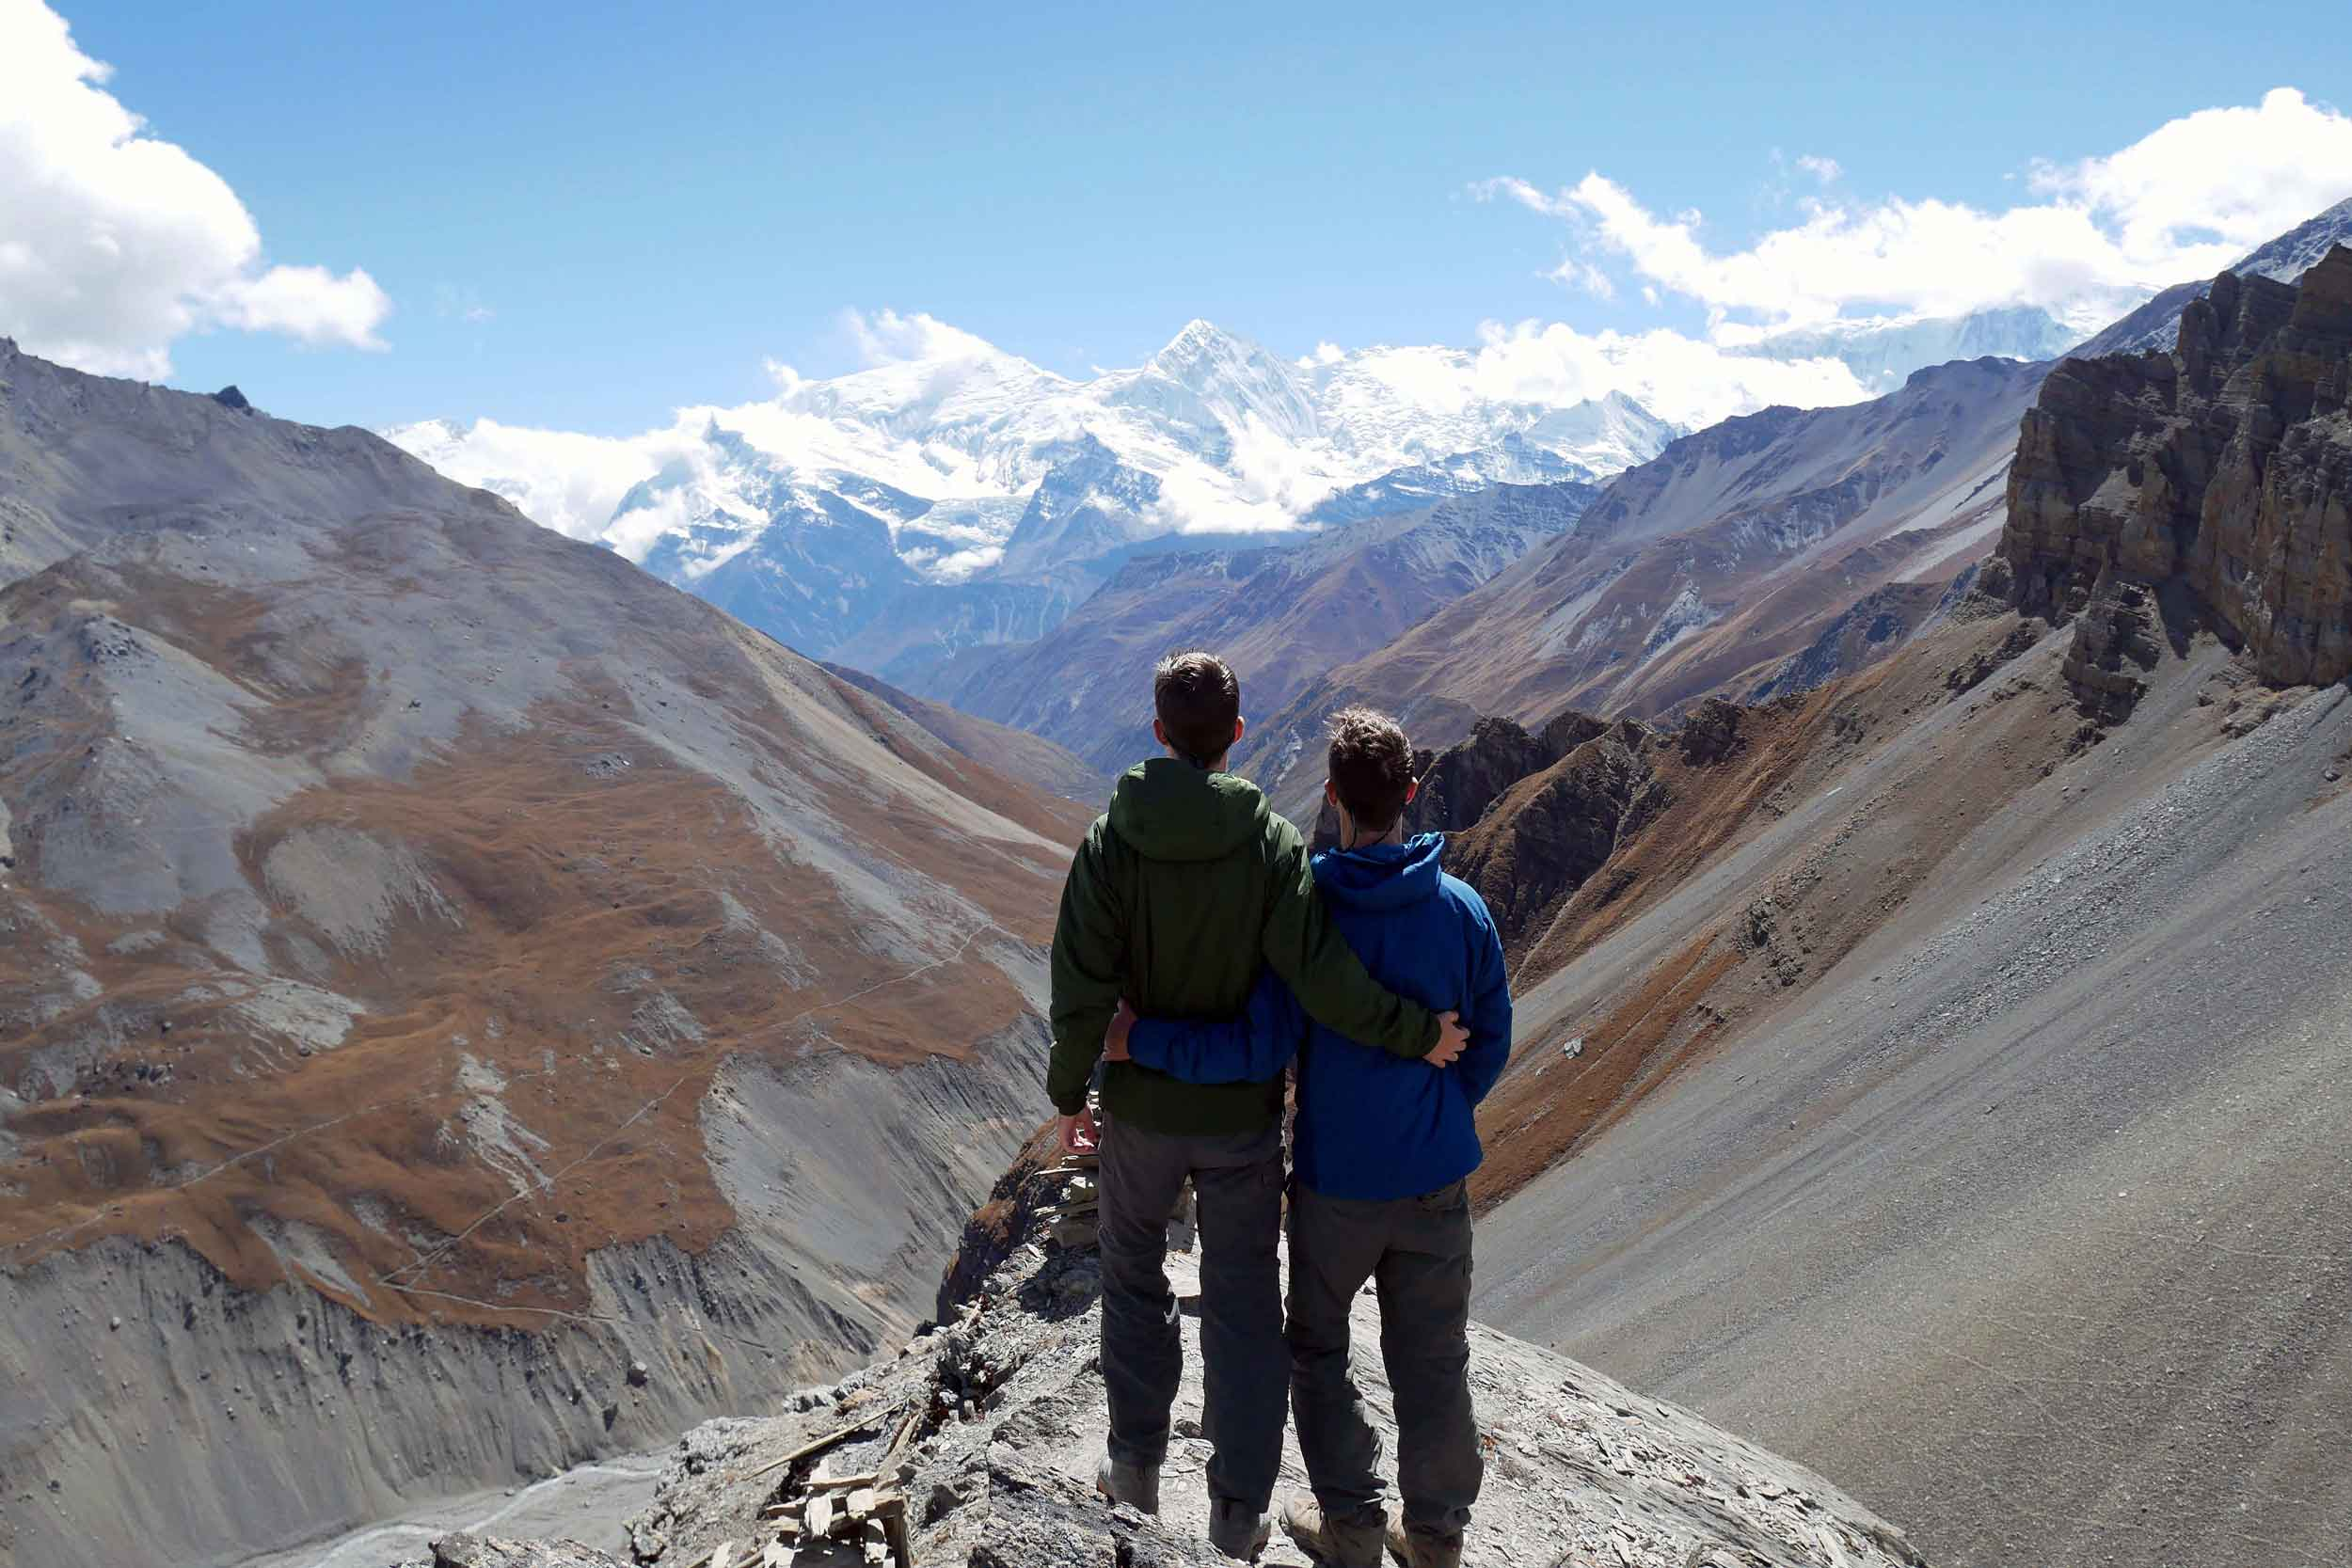 After six days of trekking Nepal's Annapurna Circuit, we took a moment to reflect on where we'd come from and what we'd learned before we set out early the next morning to cross the world's highest mountain pass.